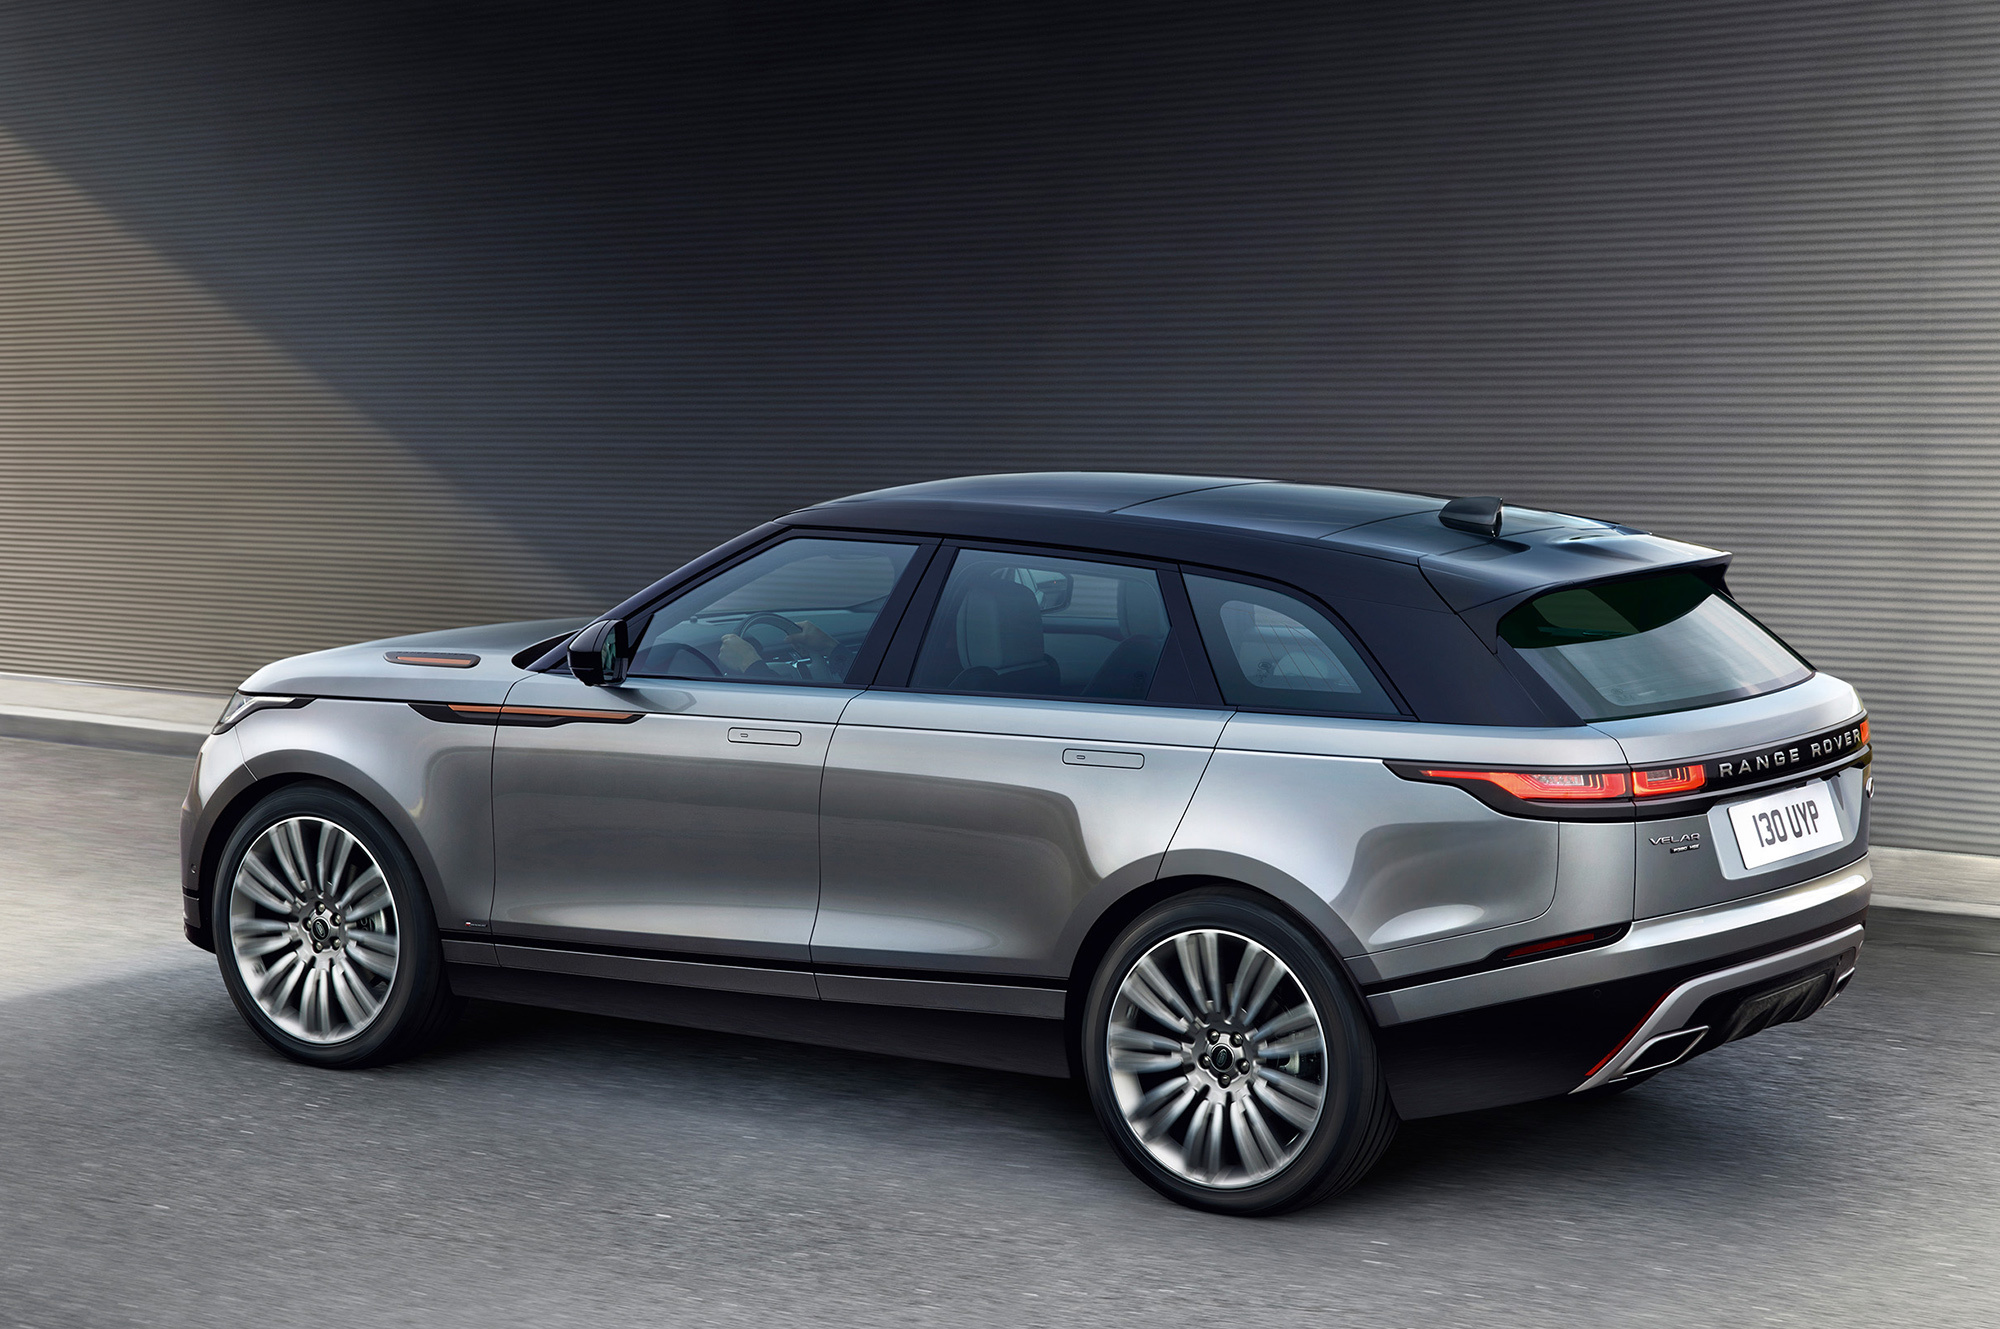 Cool Wallpaper High Resolution Range Rover - Range-Rover-Velar-HD-Wallpaper  Perfect Image Reference_238128.jpg